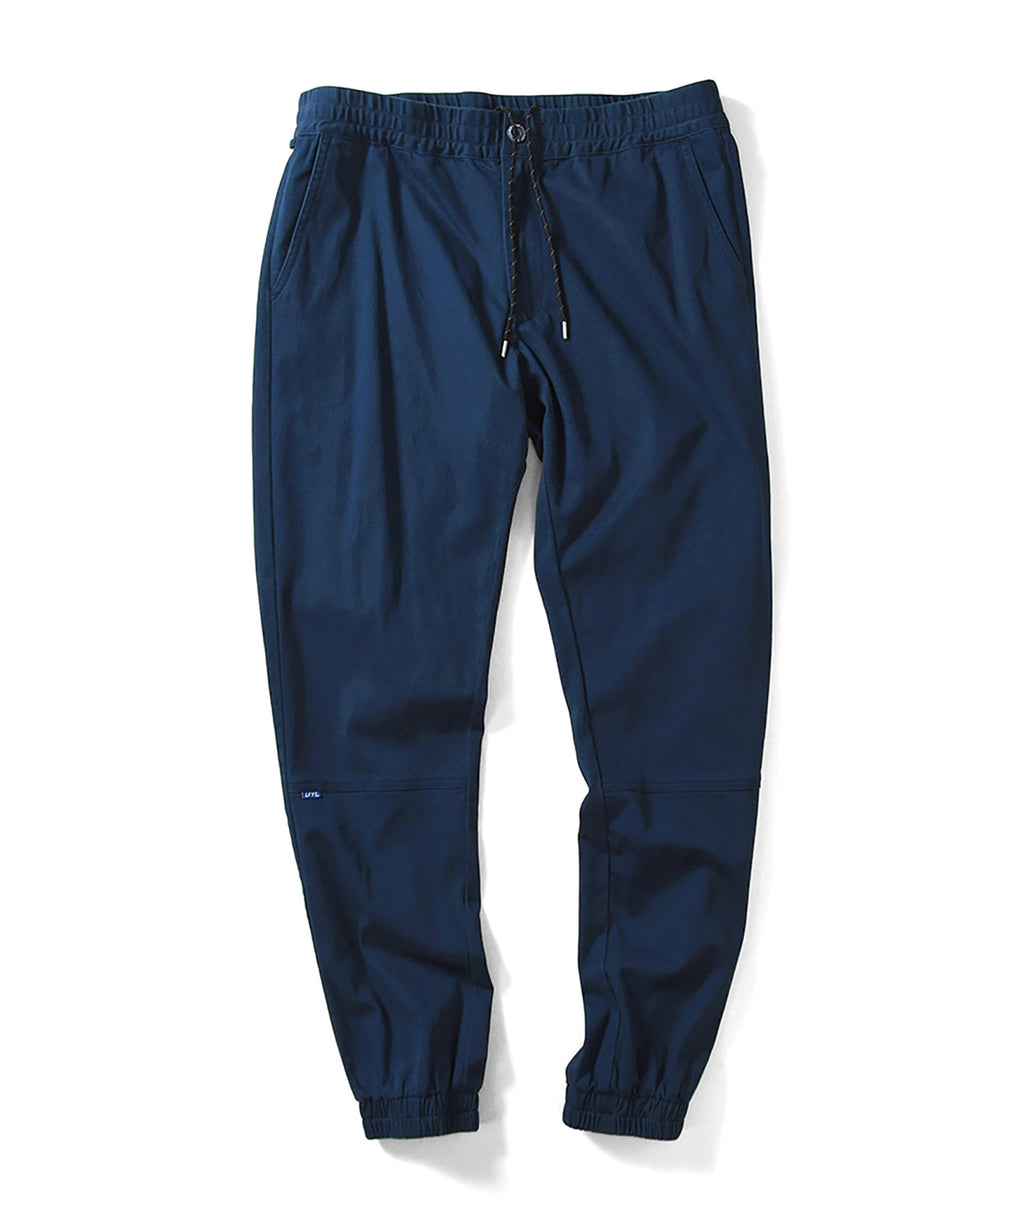 LA201202 STRETCH JOGGER PANTS NAVY